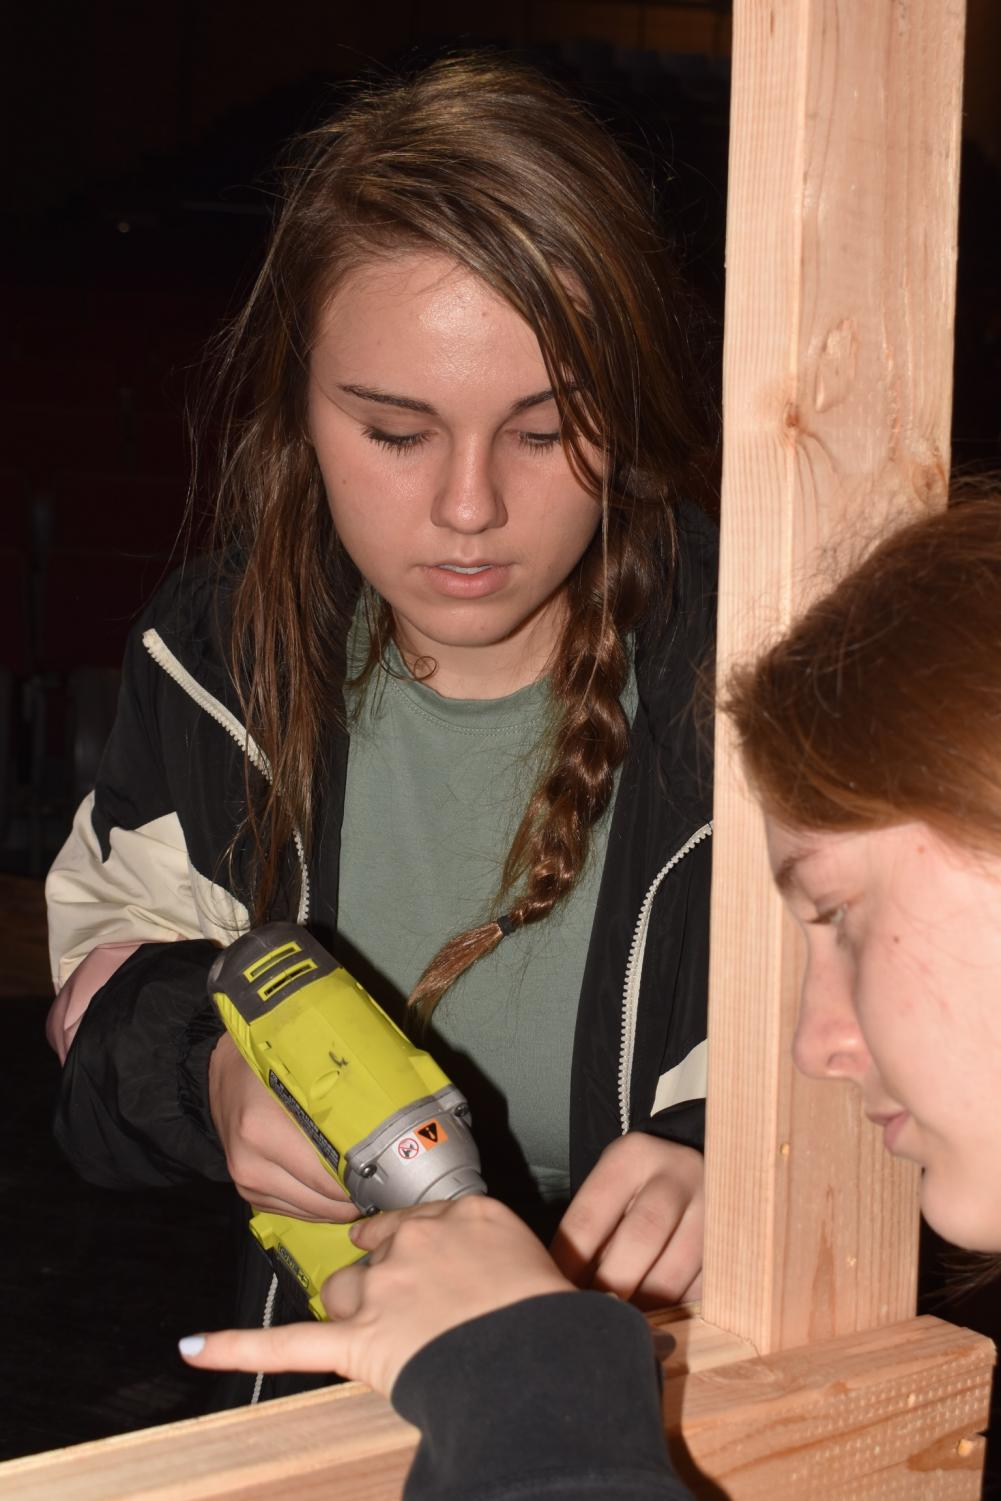 Freshman+Virginia+Maguire+uses+a+drill+to+construct+the+set+for+%E2%80%9CSweeney+Todd%2C%E2%80%9C+her+first+Grady+Drama+production.+Students+learn+technical%2C+mathematical+and+artistic+skills+on+crew.